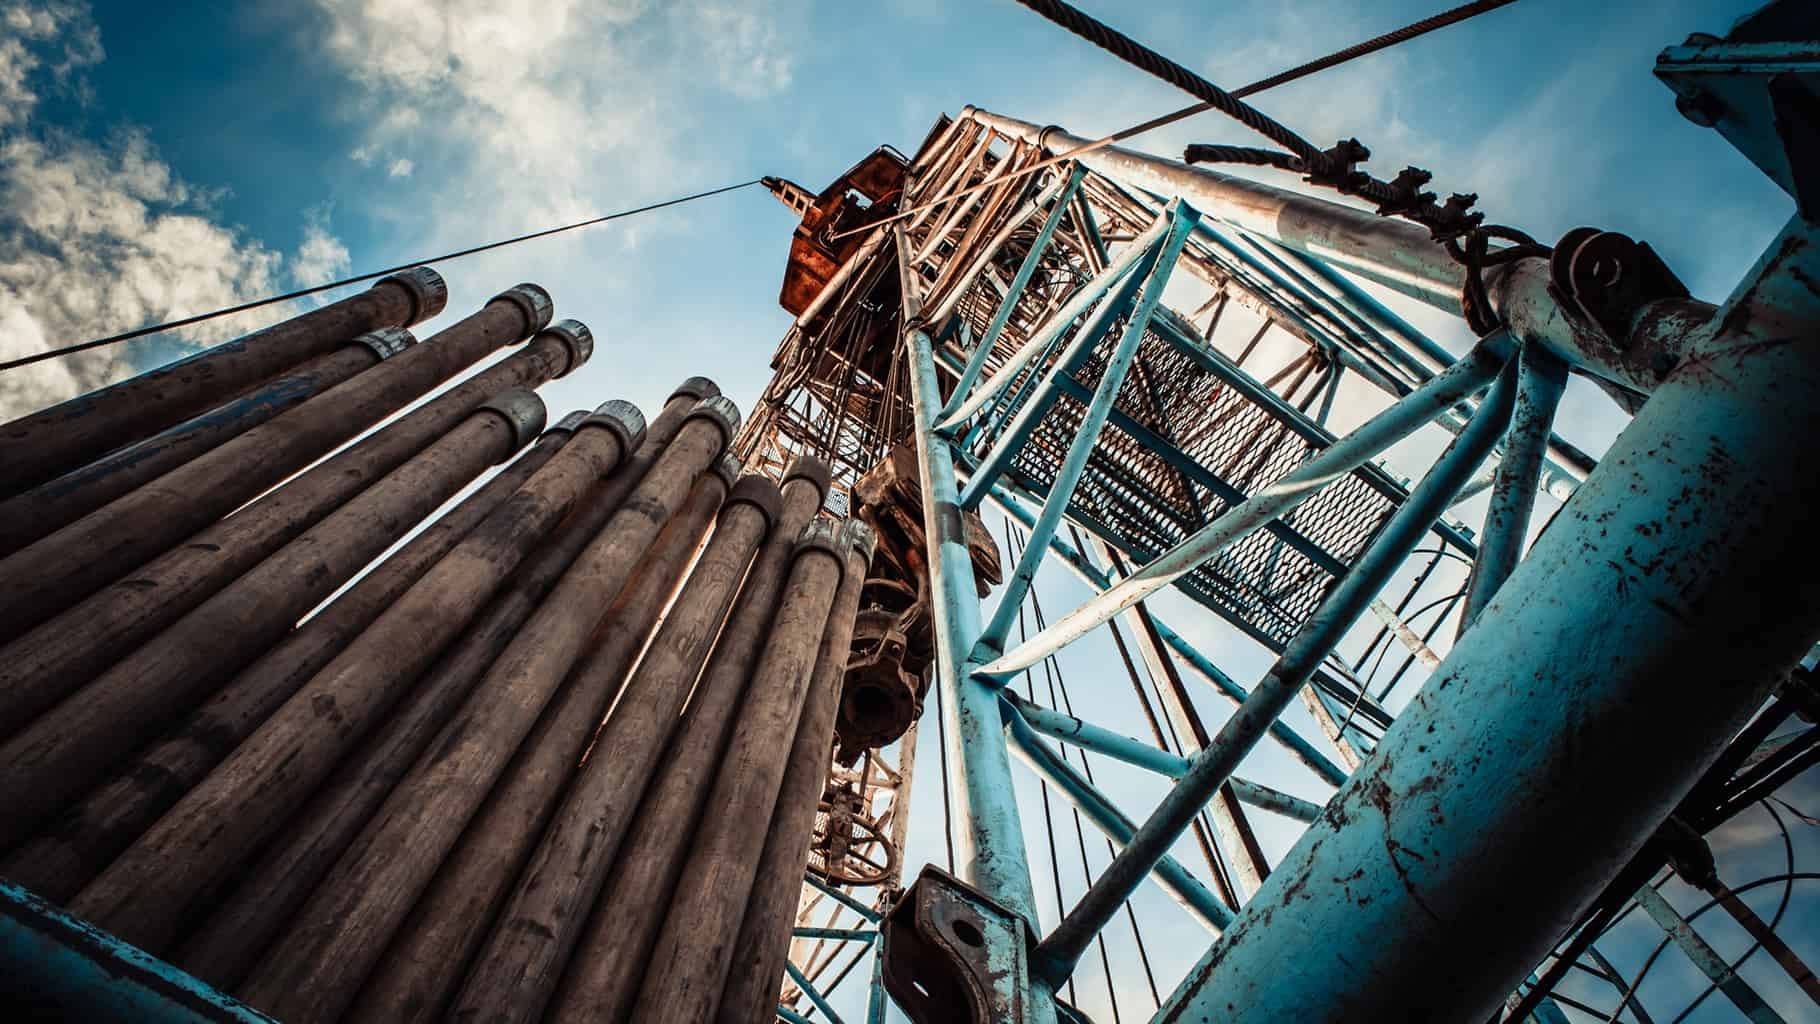 Shale gas production might have dark days ahead (Photo: Shutterstock)